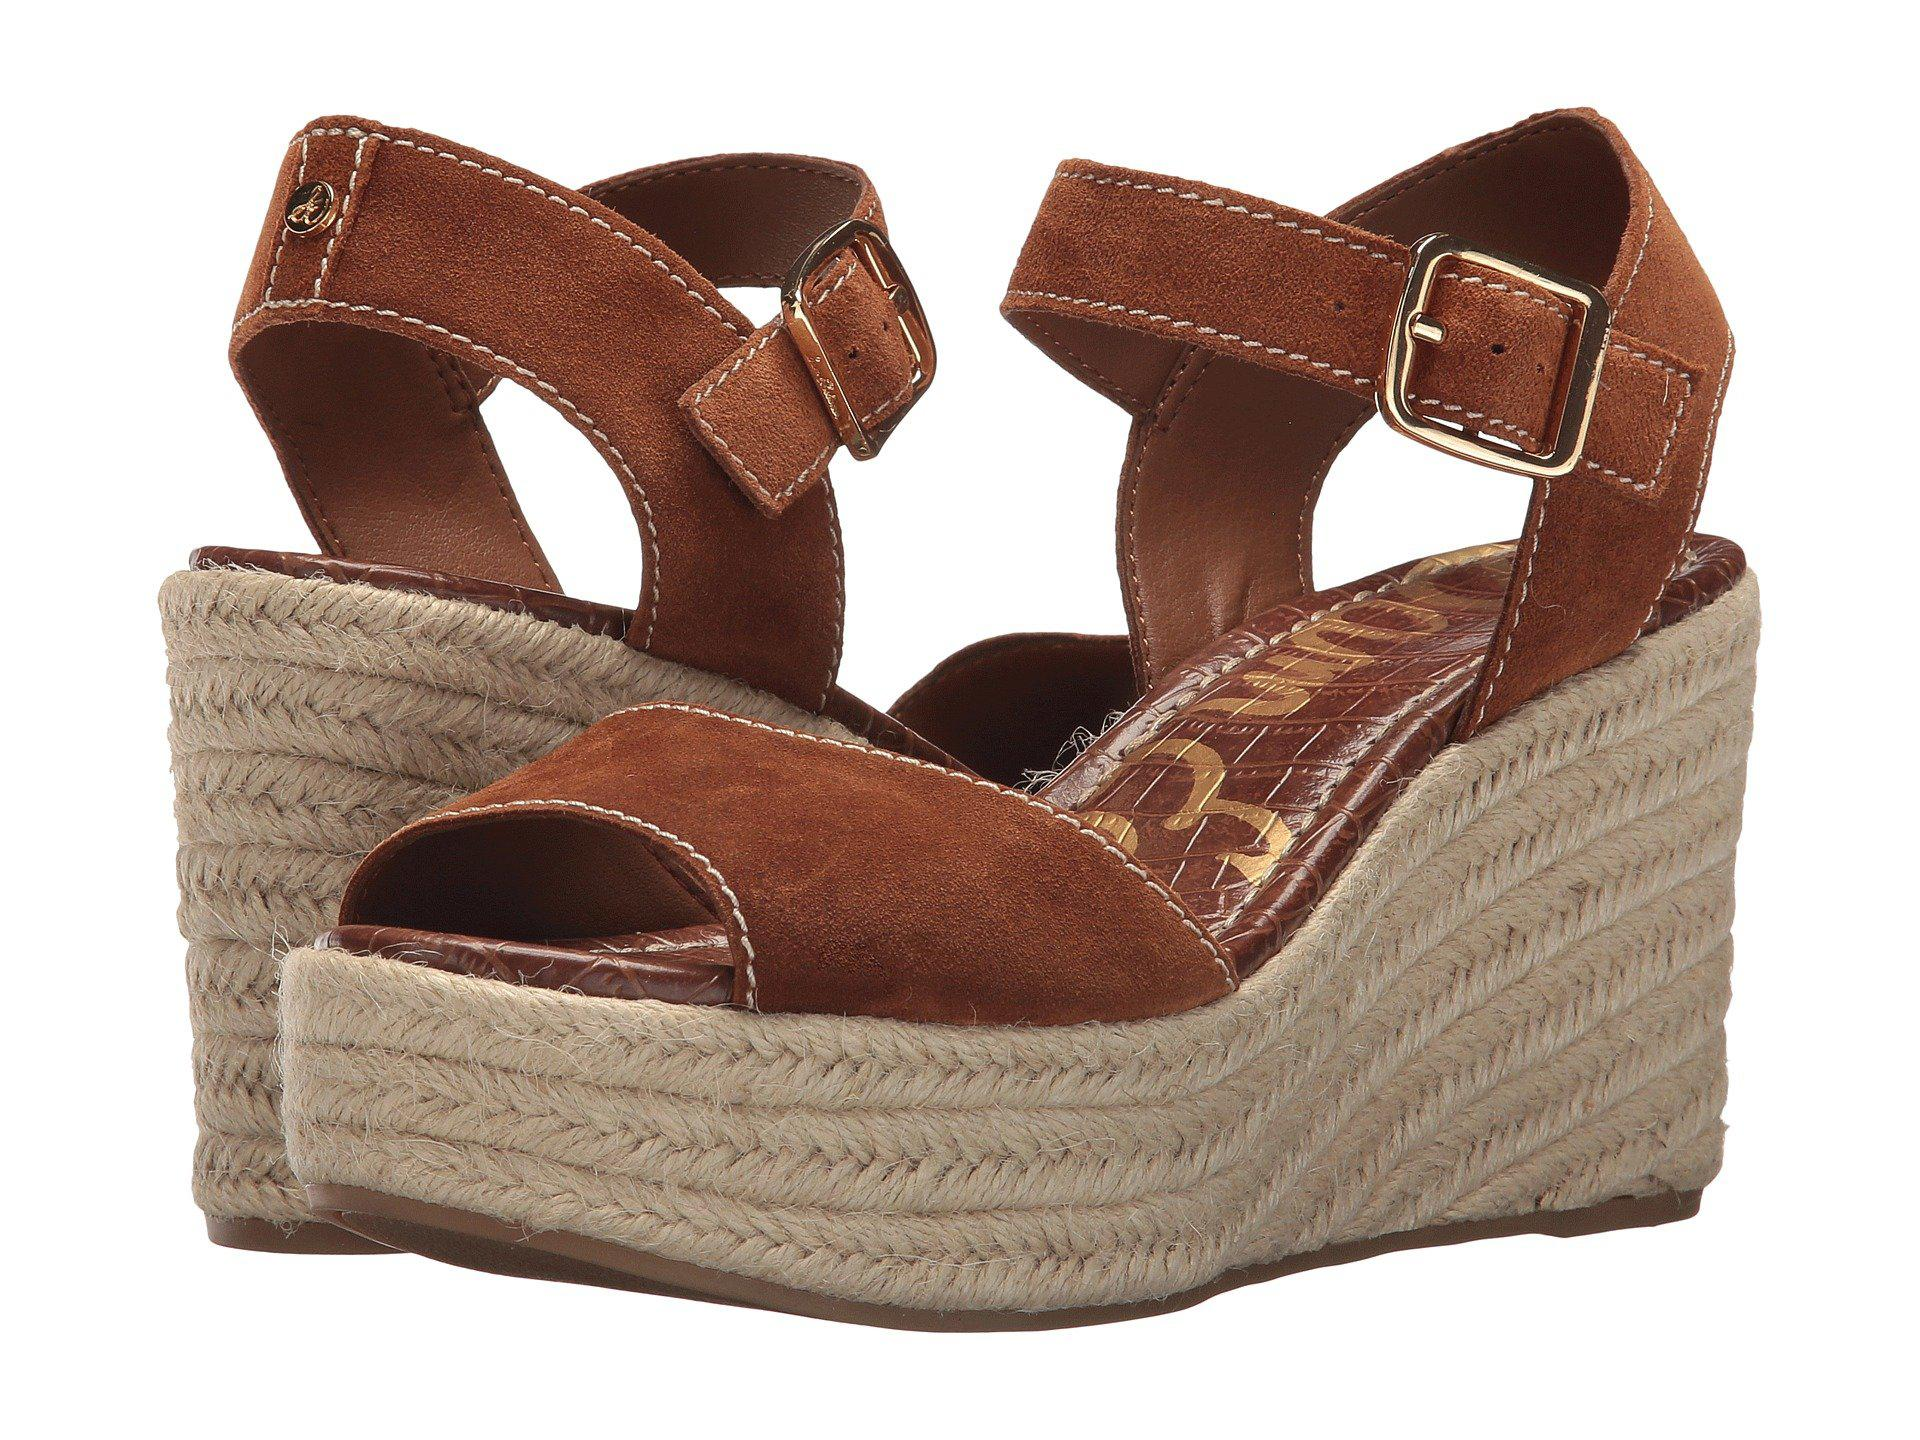 54bd284e525 Lyst - Sam Edelman Dimitree in Brown - Save 63%